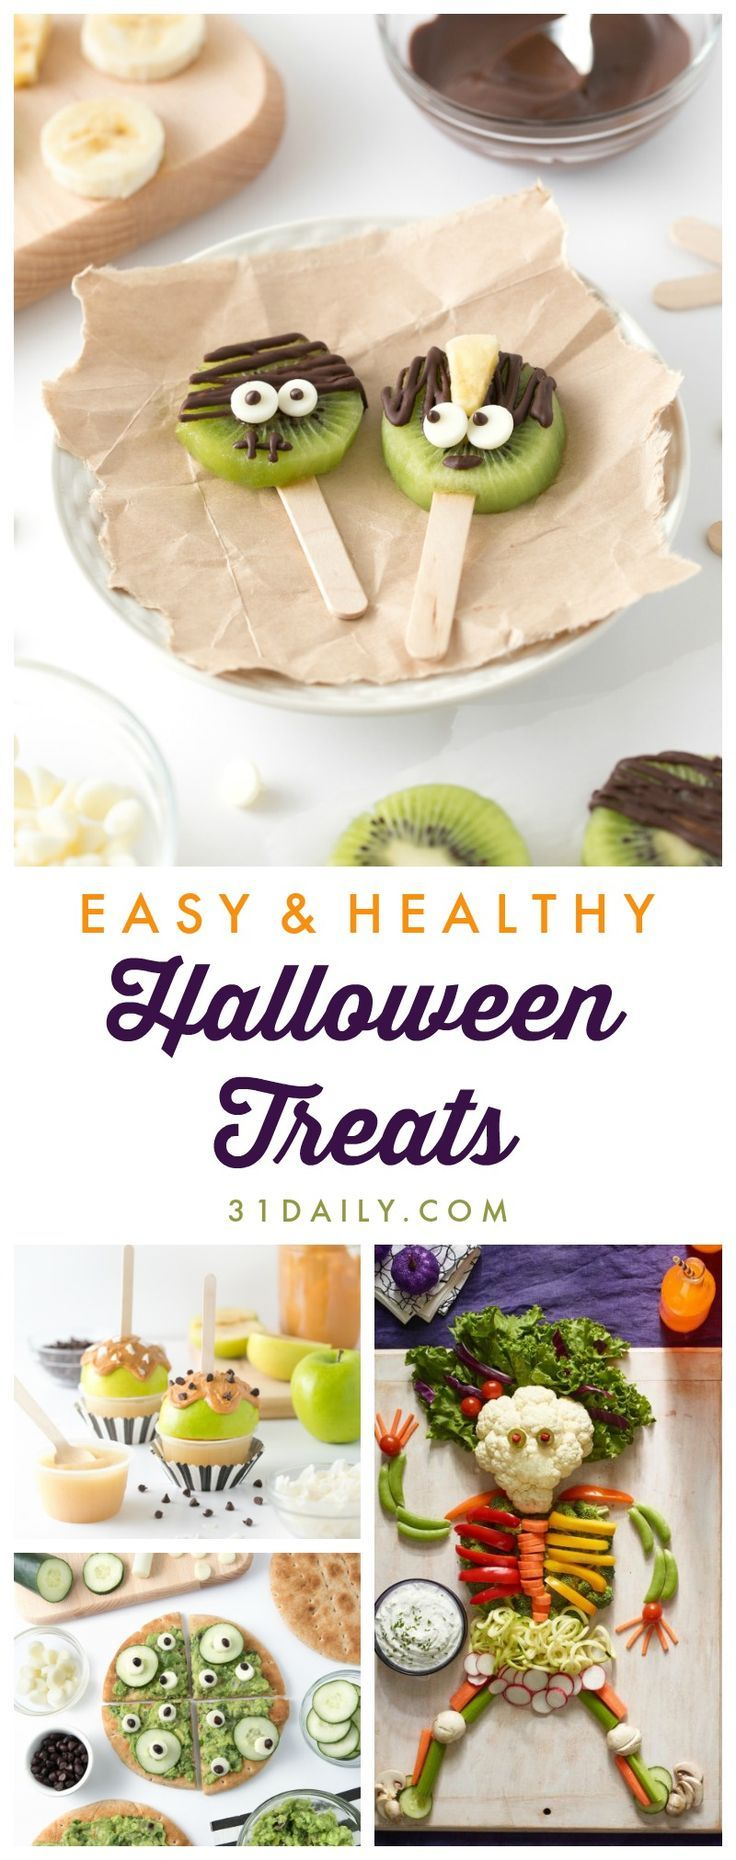 Easy Fun Healthy Halloween Treats Your Trick-or-Treaters Will Love - 31 Daily